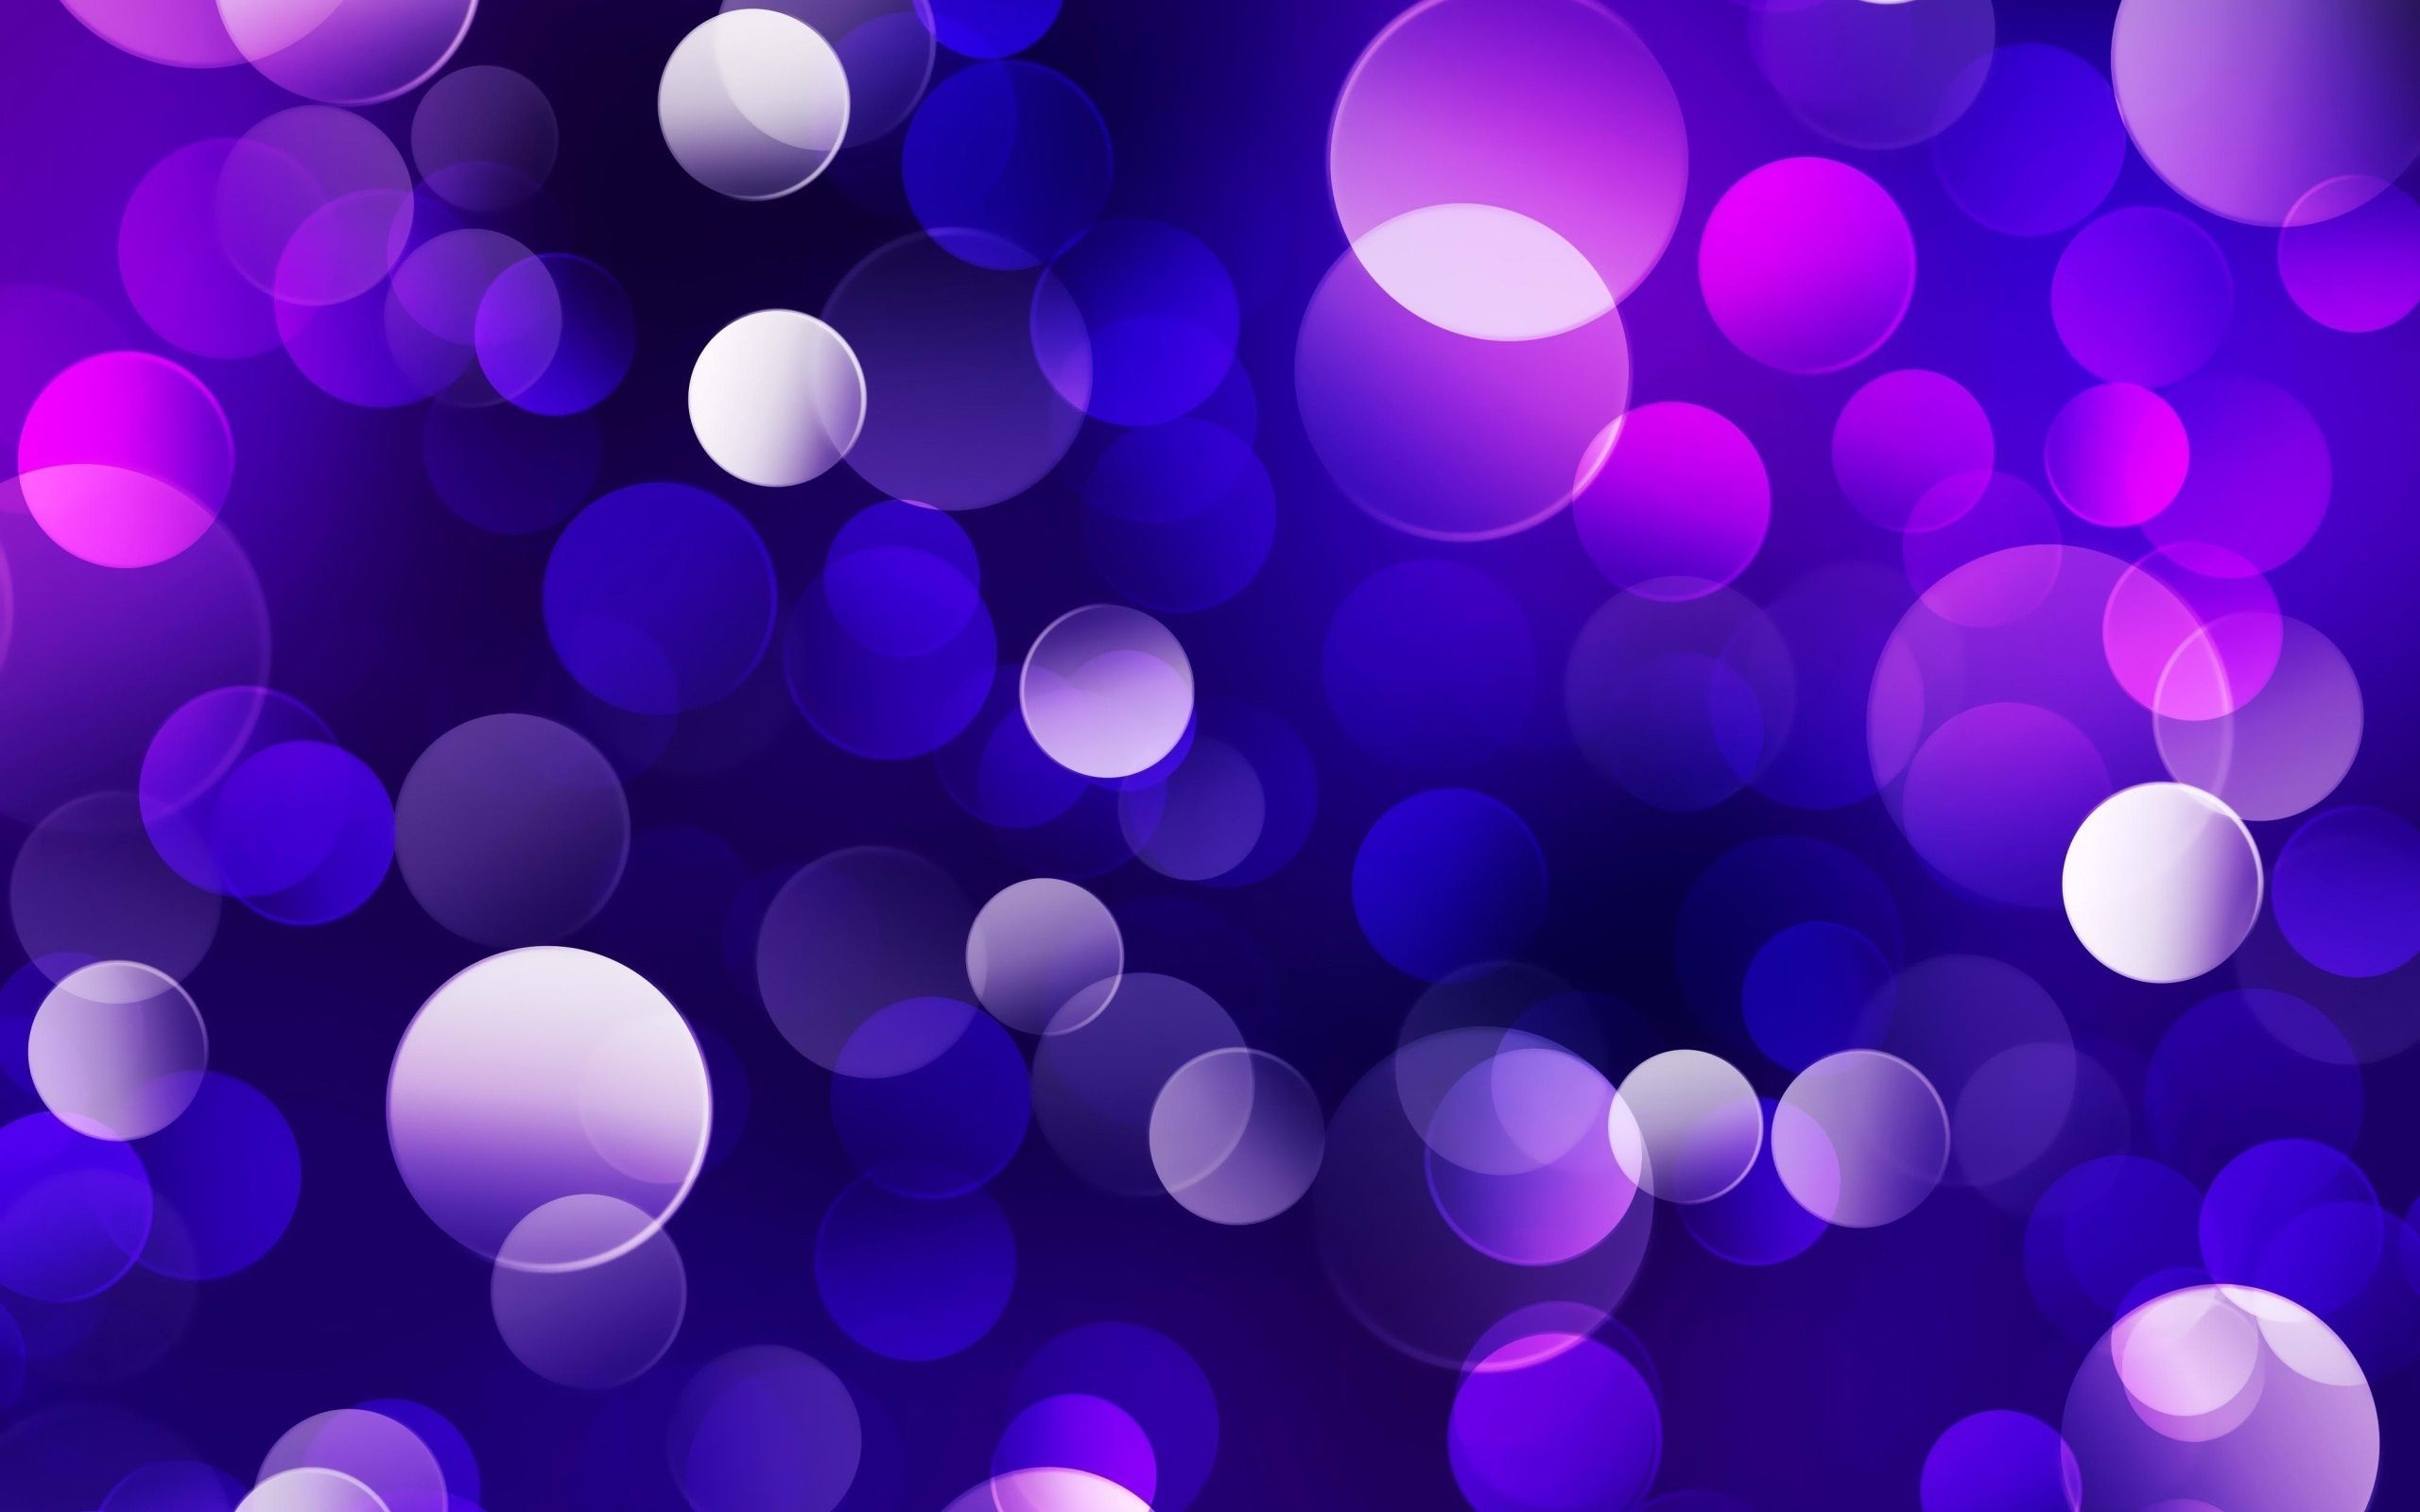 Iphone wallpaper tumblr hd - Abstract Wallpaper Girly Purple Wallpapers Picture With